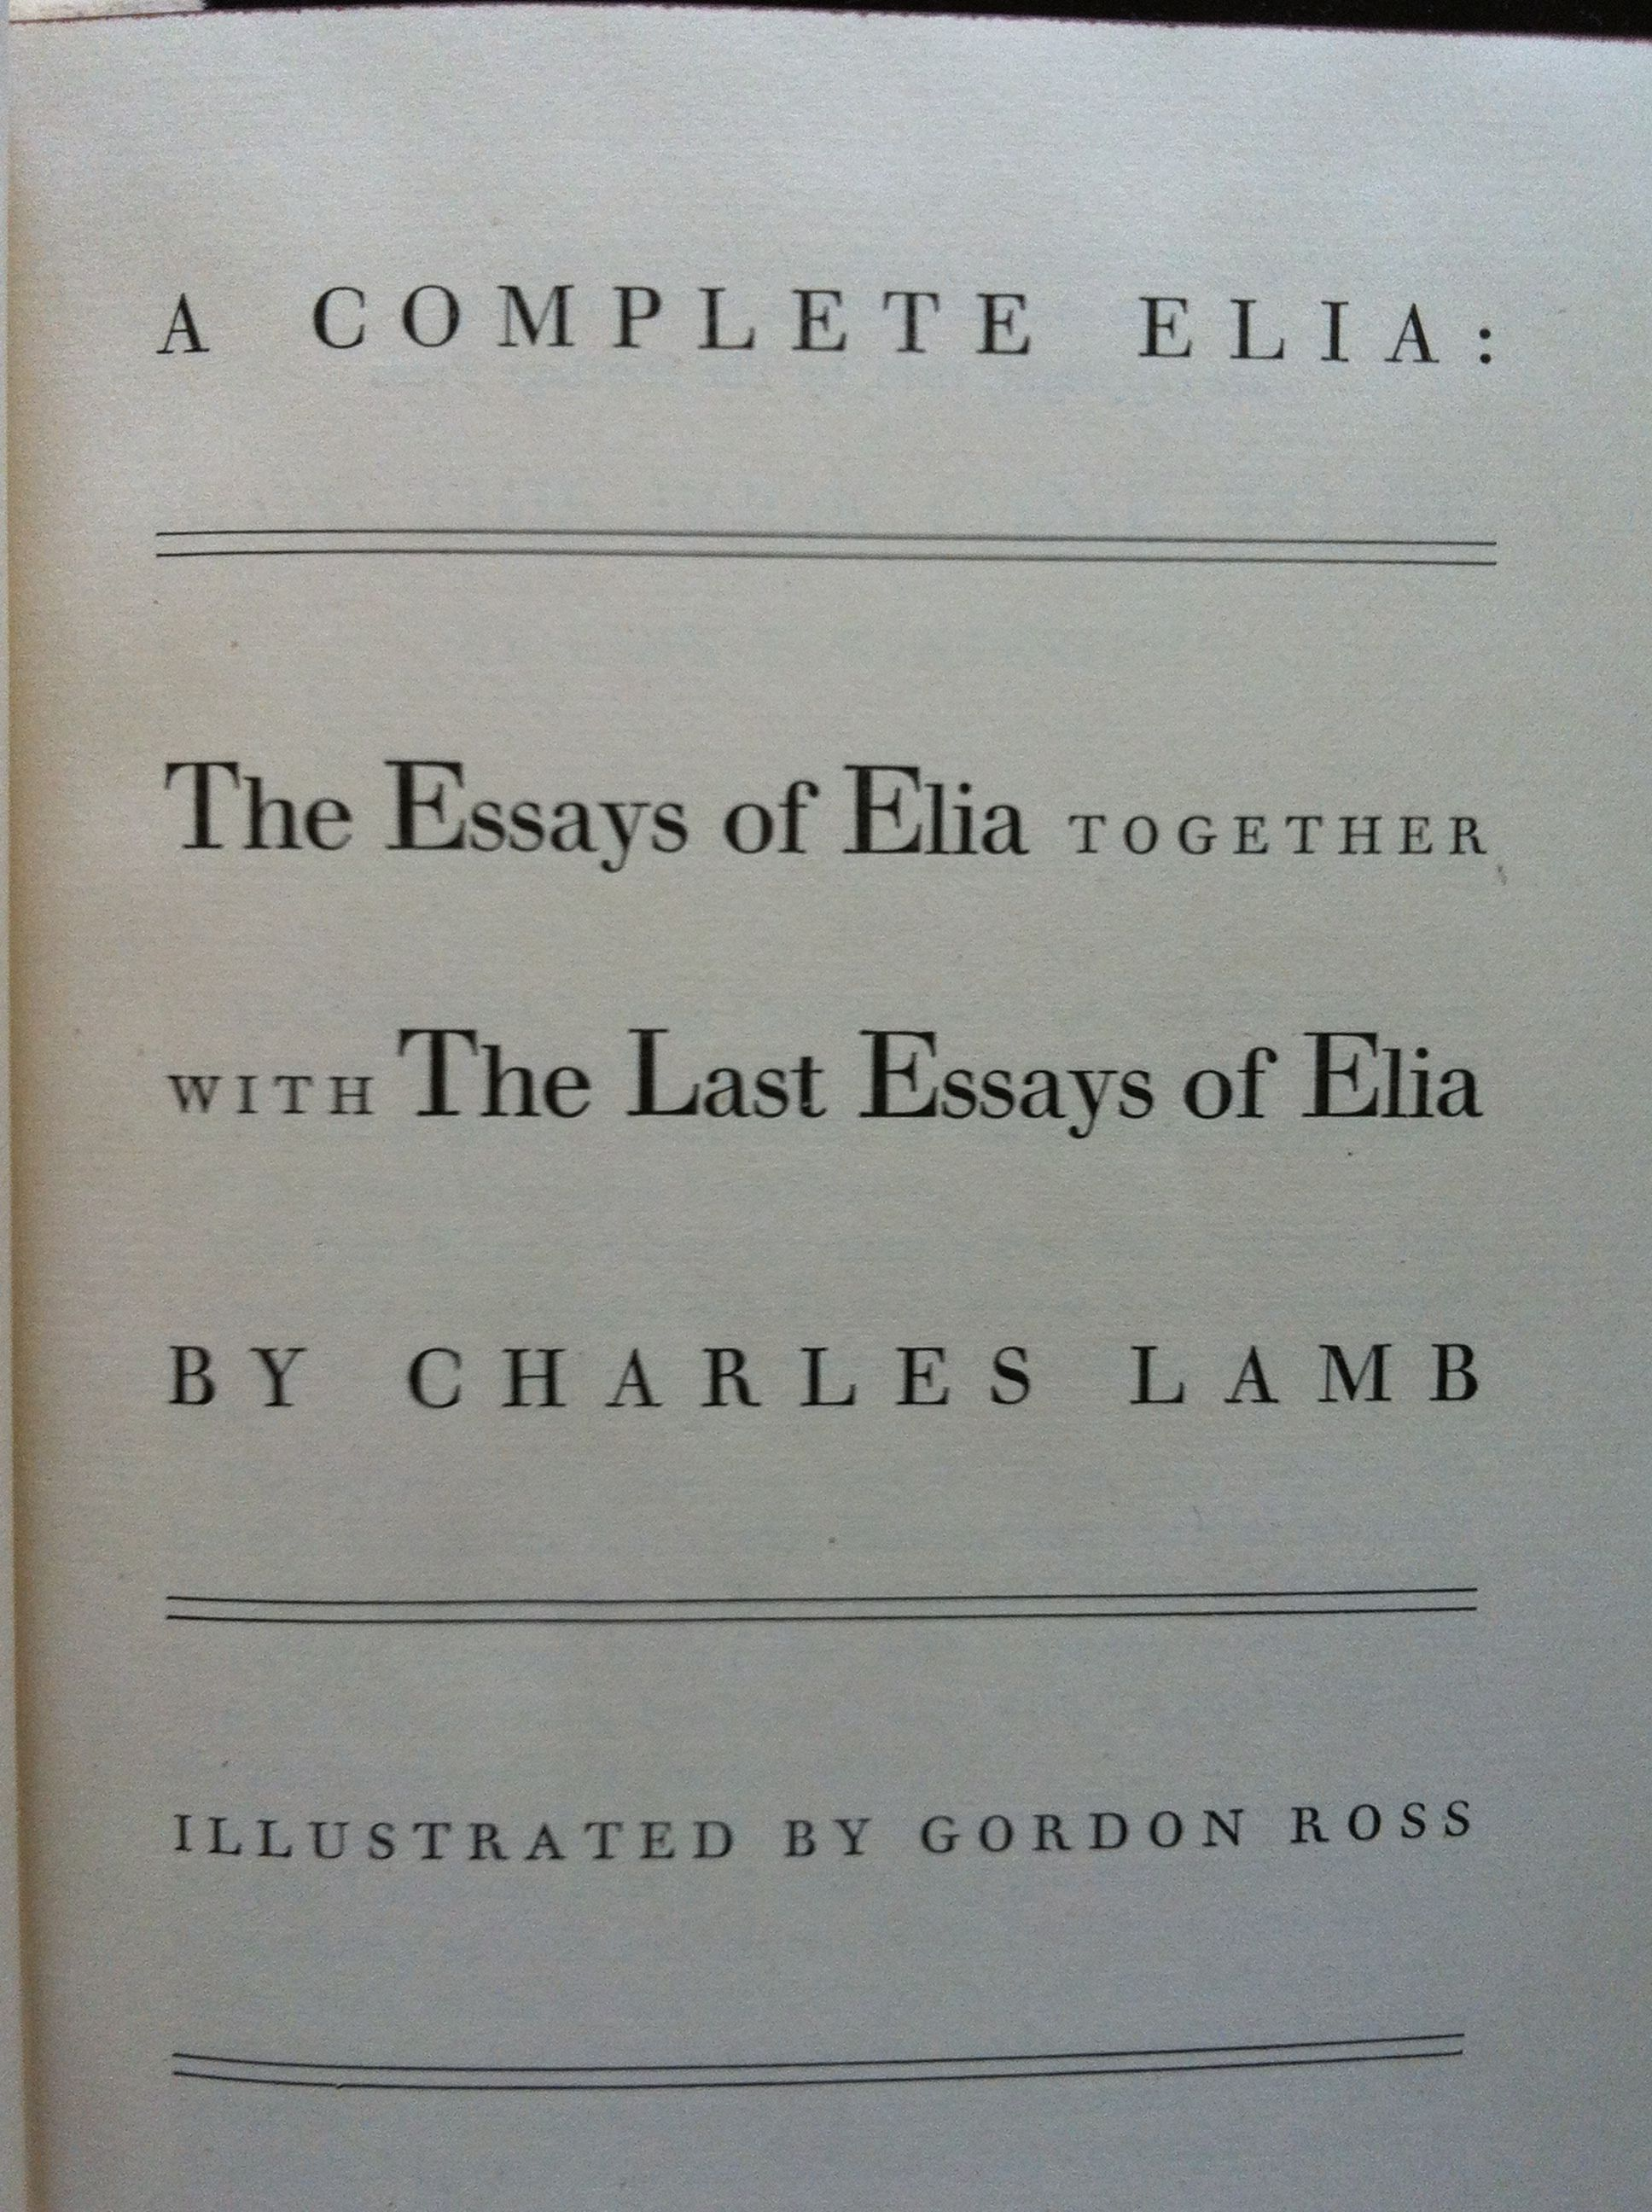 elia essays Buy the essays of elia by charles lamb (isbn: 9781230242132) from amazon's book store everyday low prices and free delivery on eligible orders.